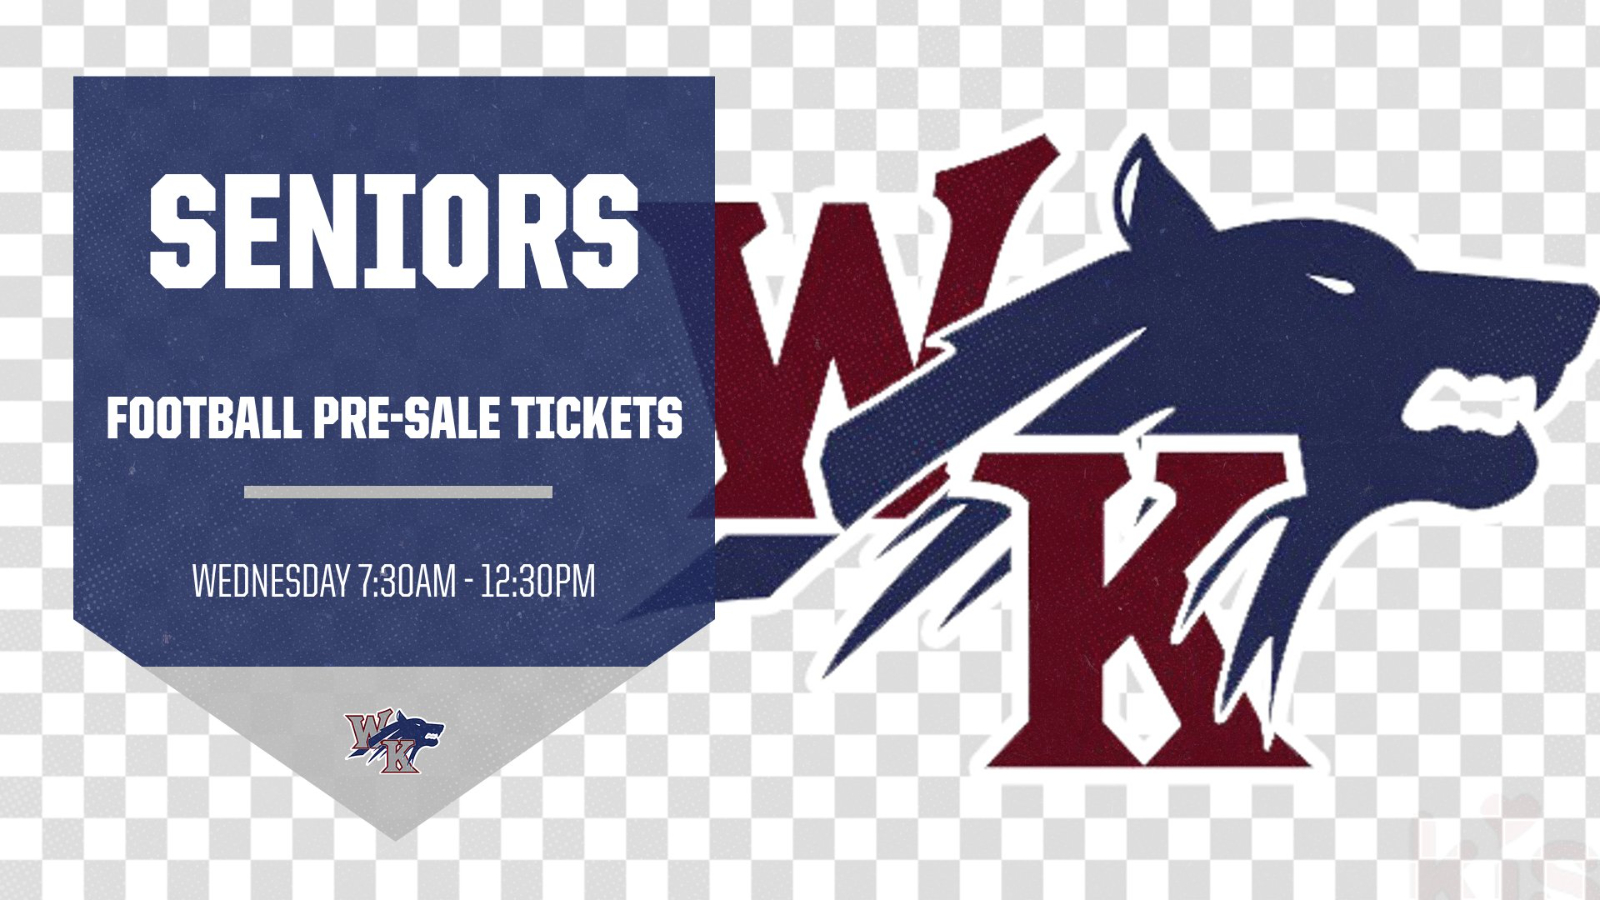 WK Seniors: Get Your Football Tickets Today!